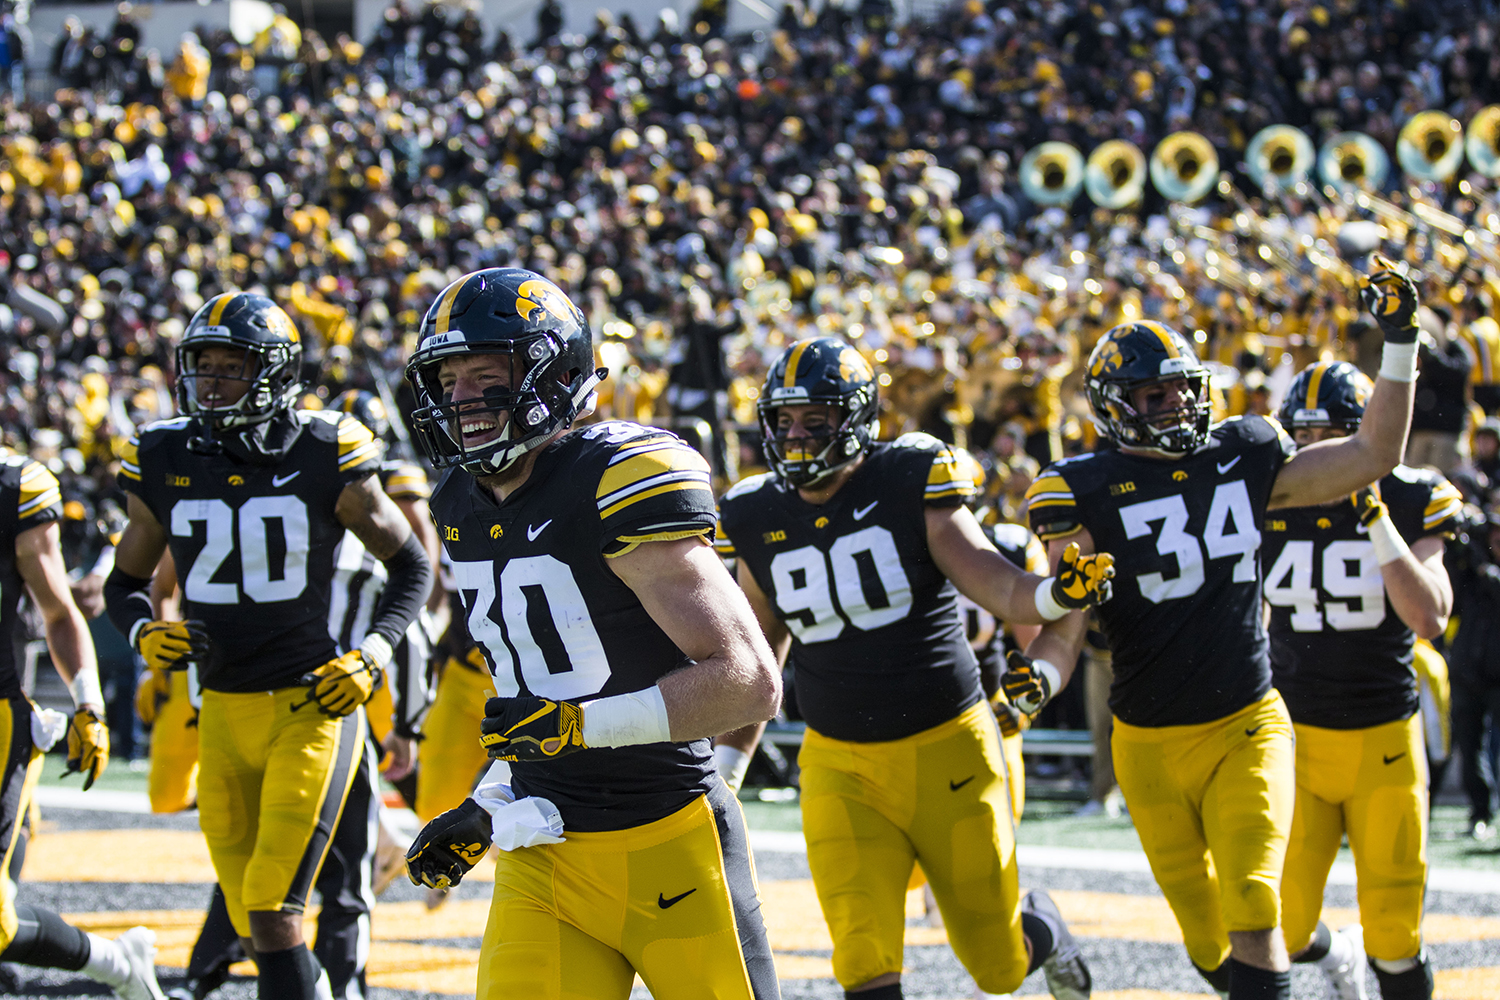 Iowa football players exit the field after scoring a touchdown on a fumble recovery during the Iowa/Maryland homecoming football game at Kinnick Stadium on Saturday, Oct. 20, 2018. The Hawkeyes defeated the Terrapins, 23-0.